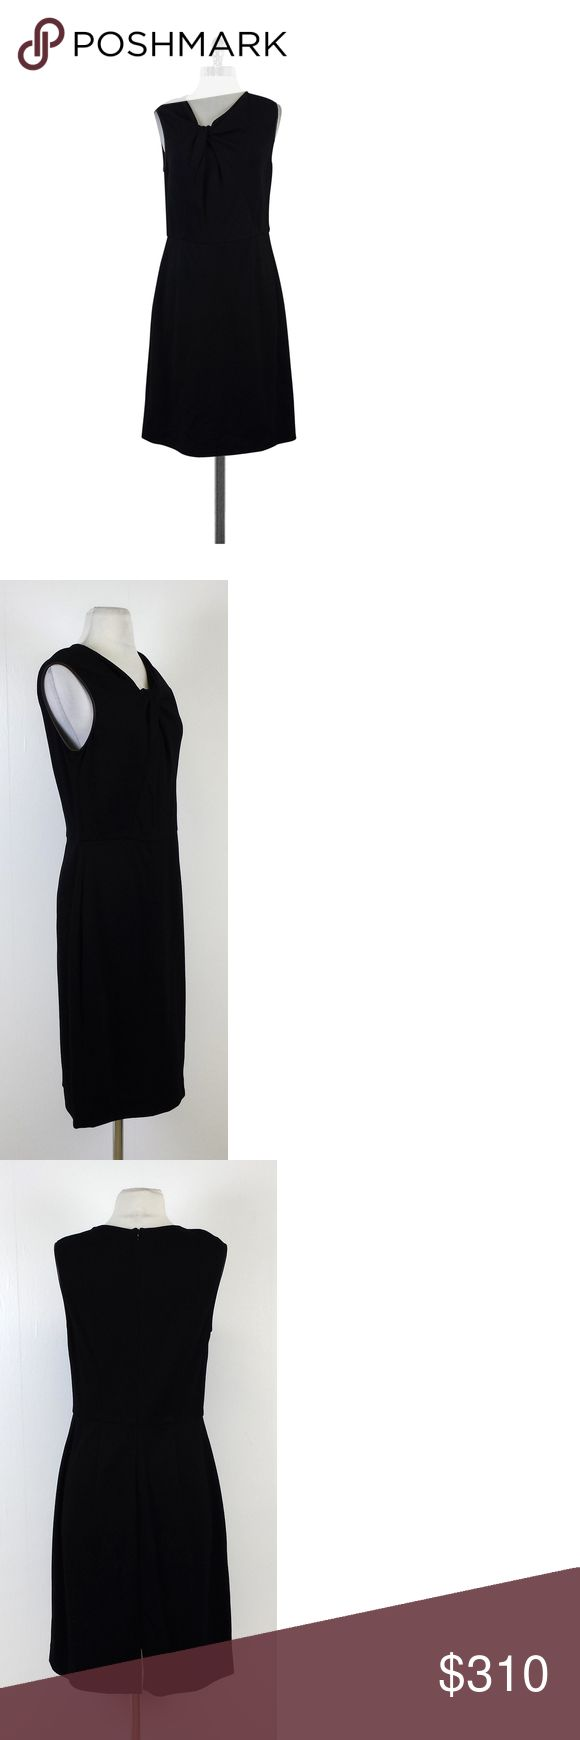 """Jason Wu- Black Leather Trimmed Sleeveless Dress Sz 12 This elegant red dress is trimmed with leather, has a knotted neckline, and a tailored fit. Wear this stylish dress for work or for play. Size 12 Body 68% rayon 28% nylon 4% polyurethane Lining 93% silk 7% elastane Trim 1 100% rayon Trim 2 Leather Made in USA Concealed back zip w/clasp Sleeveless Leather trim on arm Knotted neckline Fitted waist Slit on back Shoulder to hem 40"""" Waist 32"""" Jason Wu is a Taiwanese Canadian fashion designer…"""